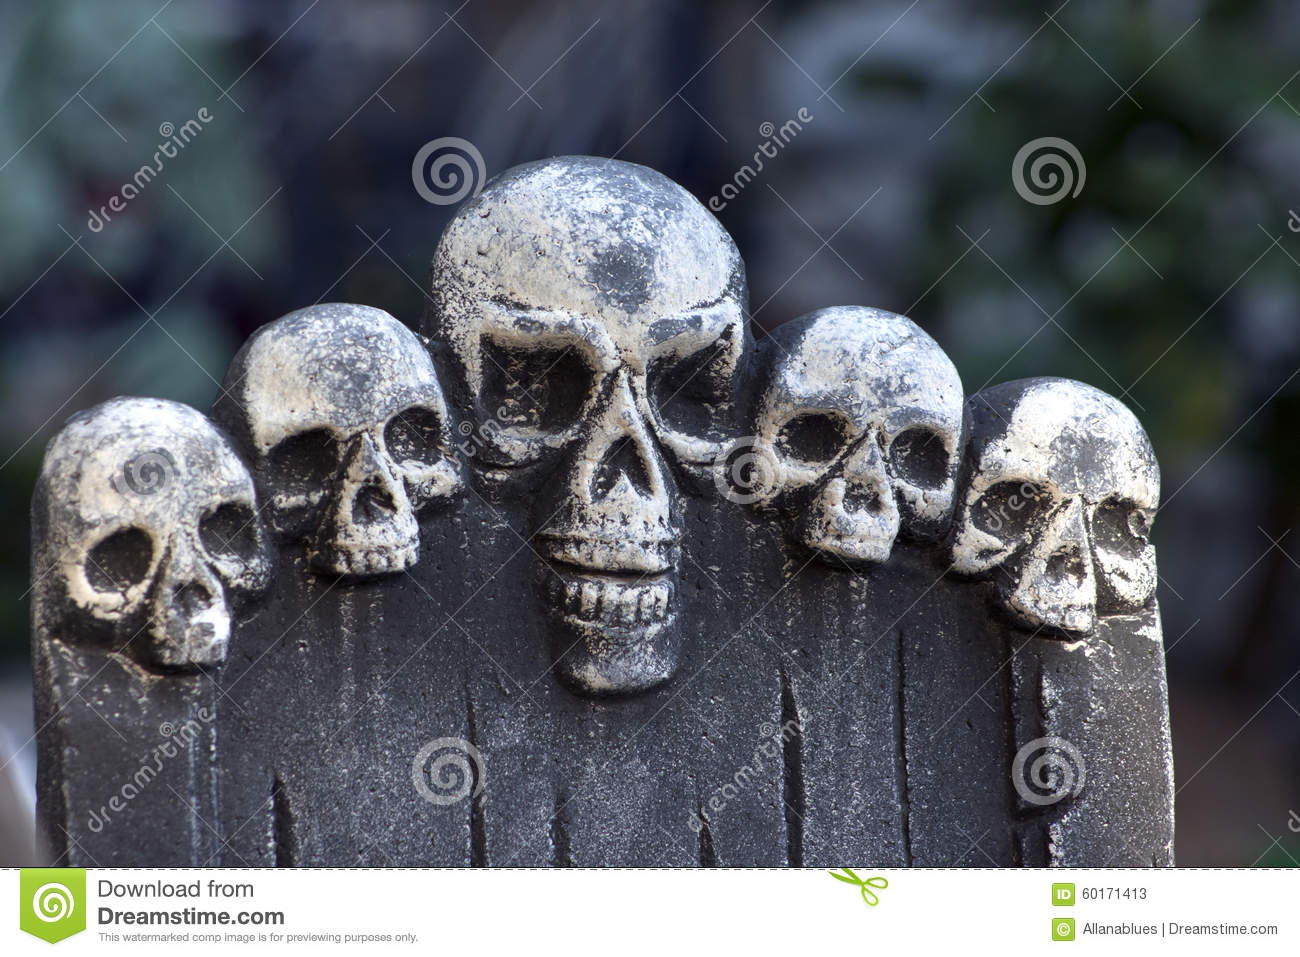 Halloween skull decorations - Halloween Skull Decorations